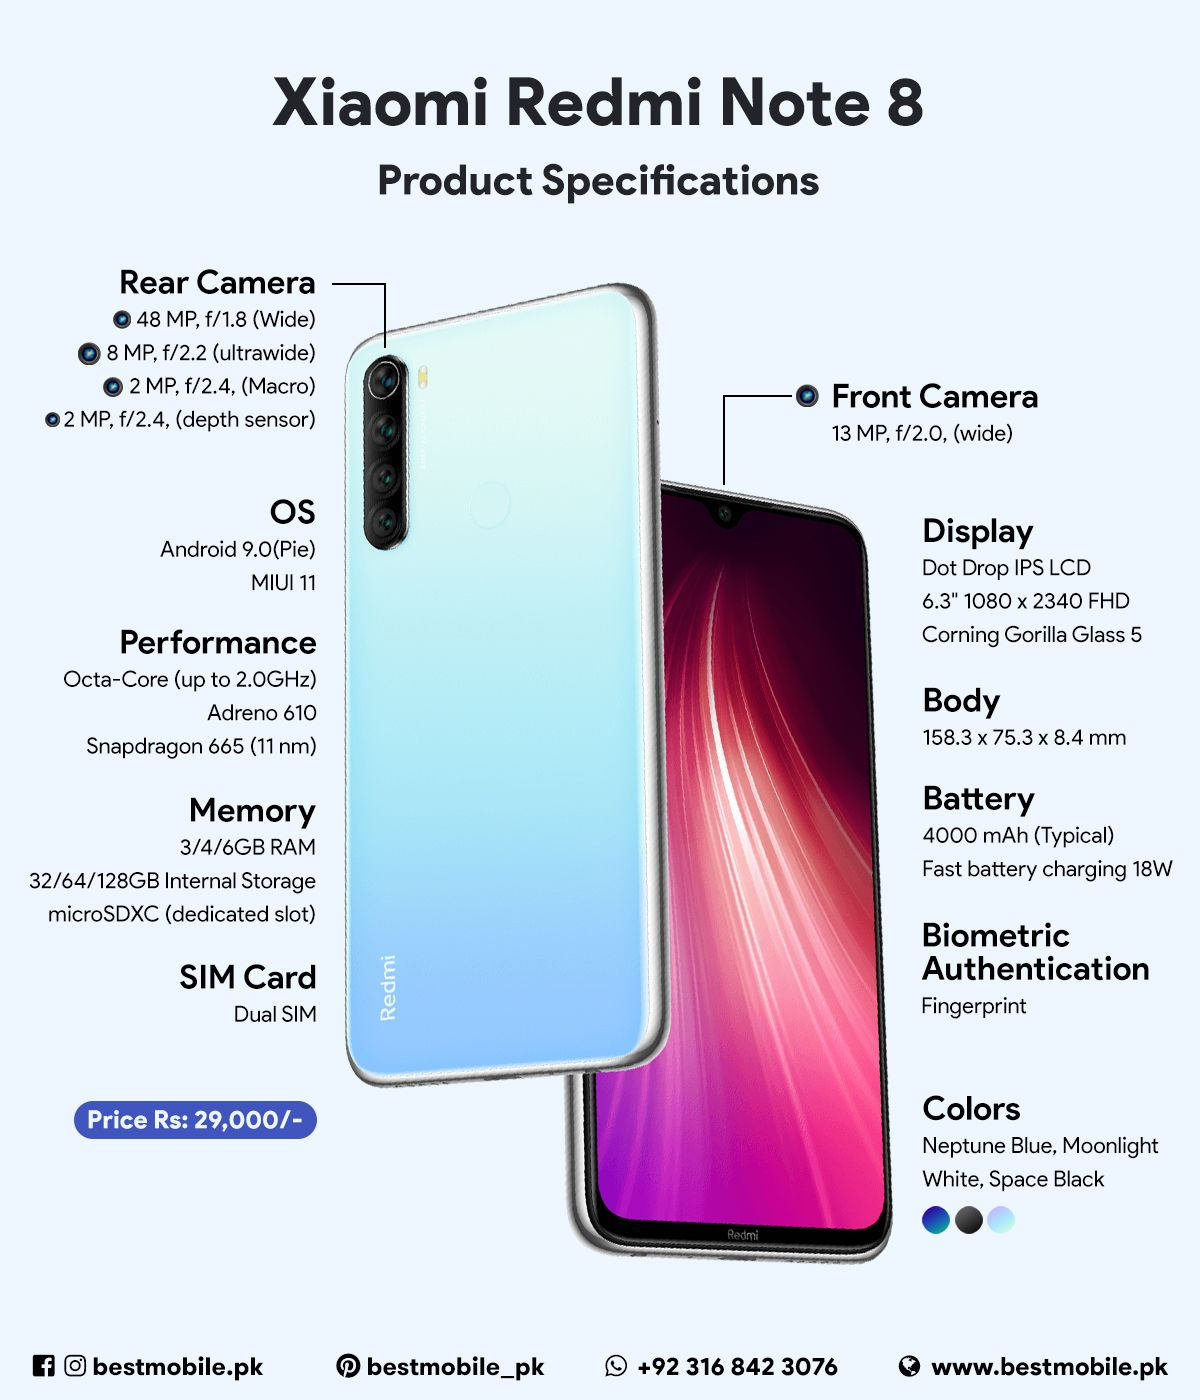 Xiaomi Redmi Note 8 Product Specifications Xiaomi Phone Samsung Phone Cases